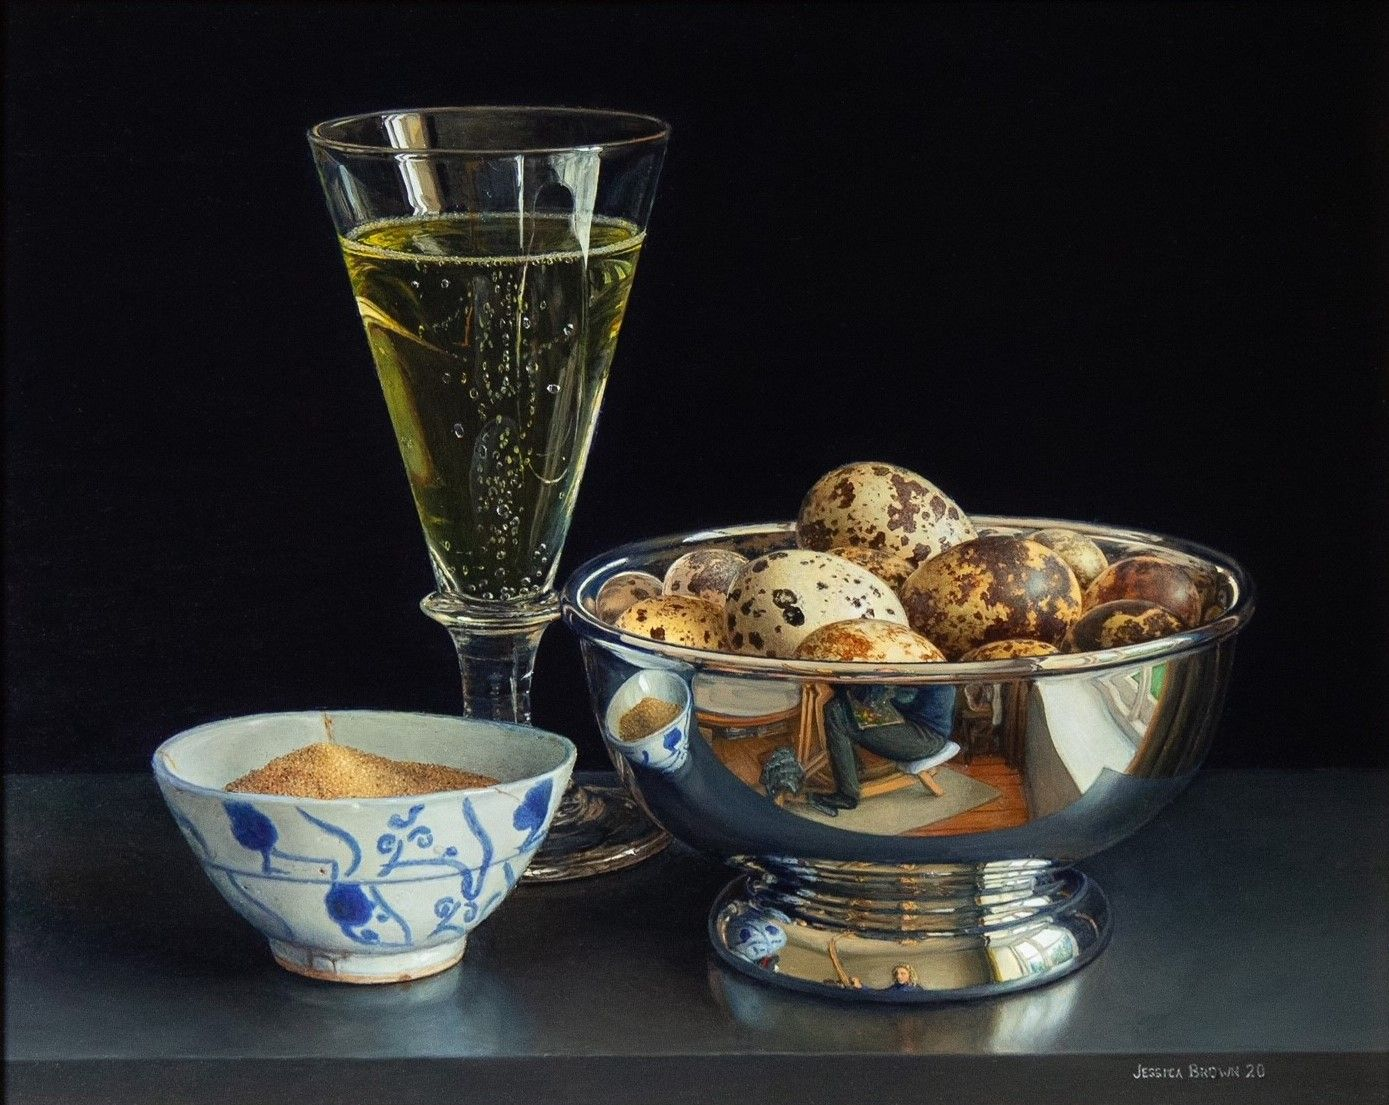 Still Life with Quails Eggs, Champagne and Celery Salt by Jessica Brown